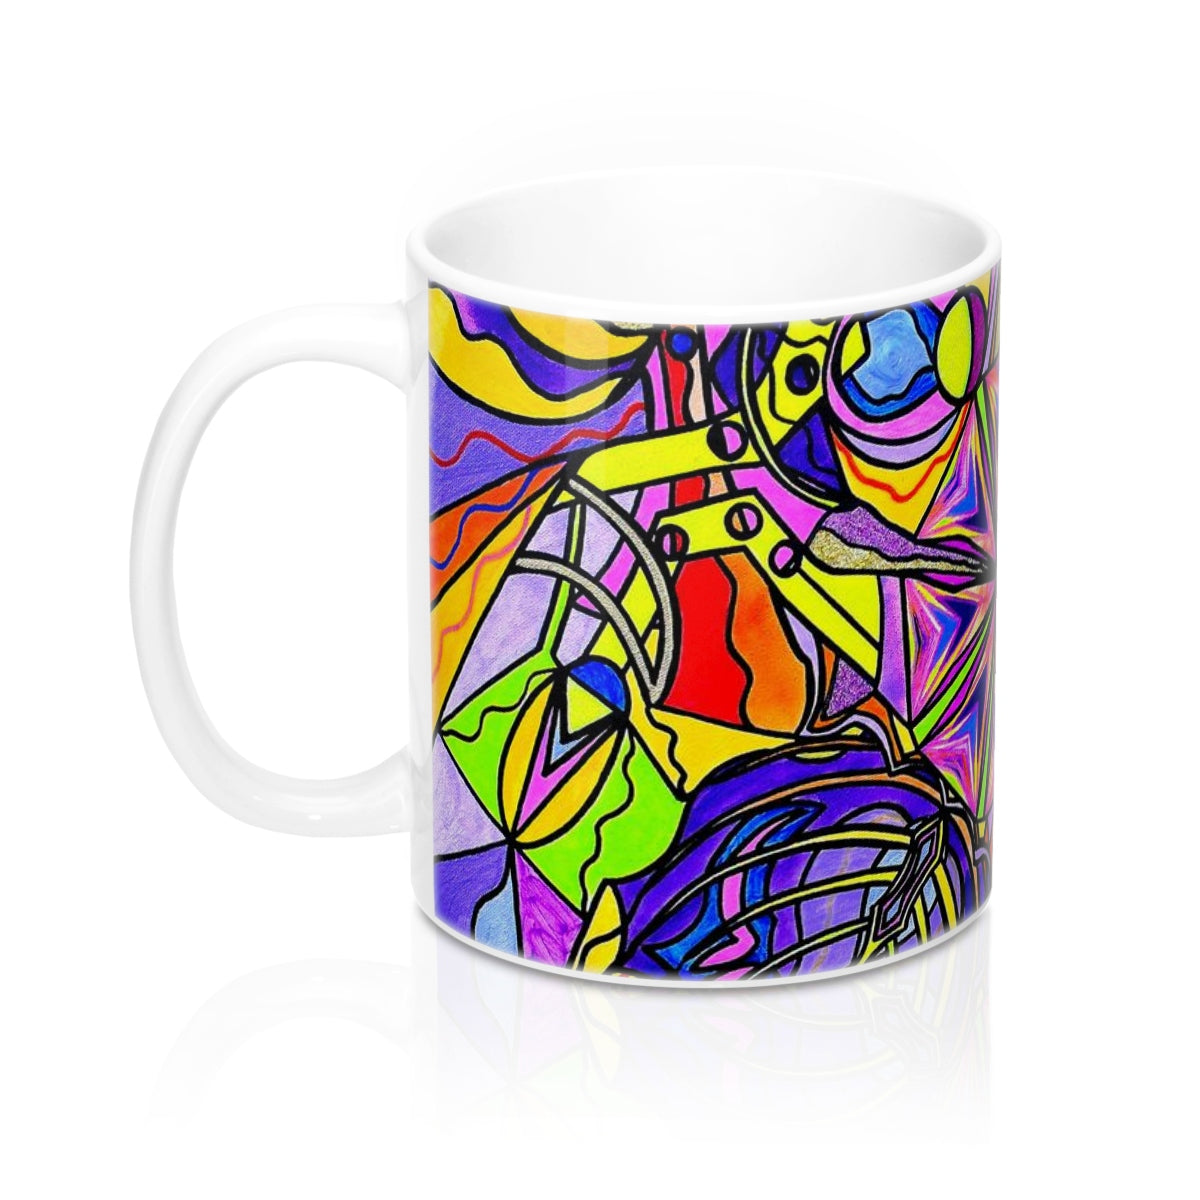 Breaking Through Barriers - Mug